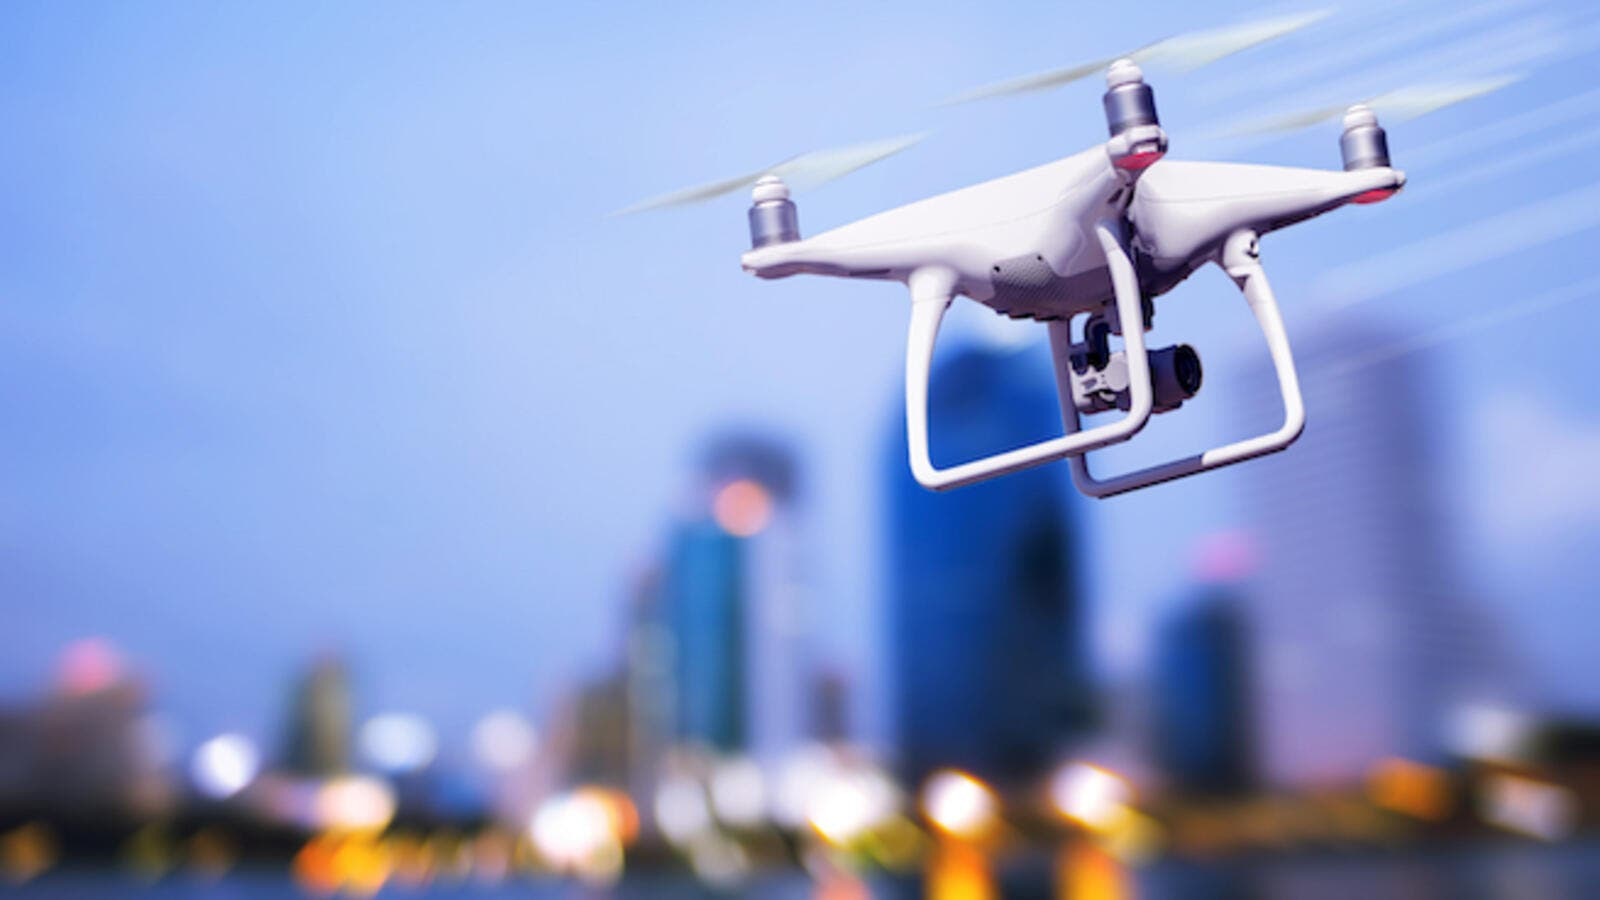 With this new regulation it is expected that drones will soon be appearing in stores all around Saudi Arabia. (Shutterstock)